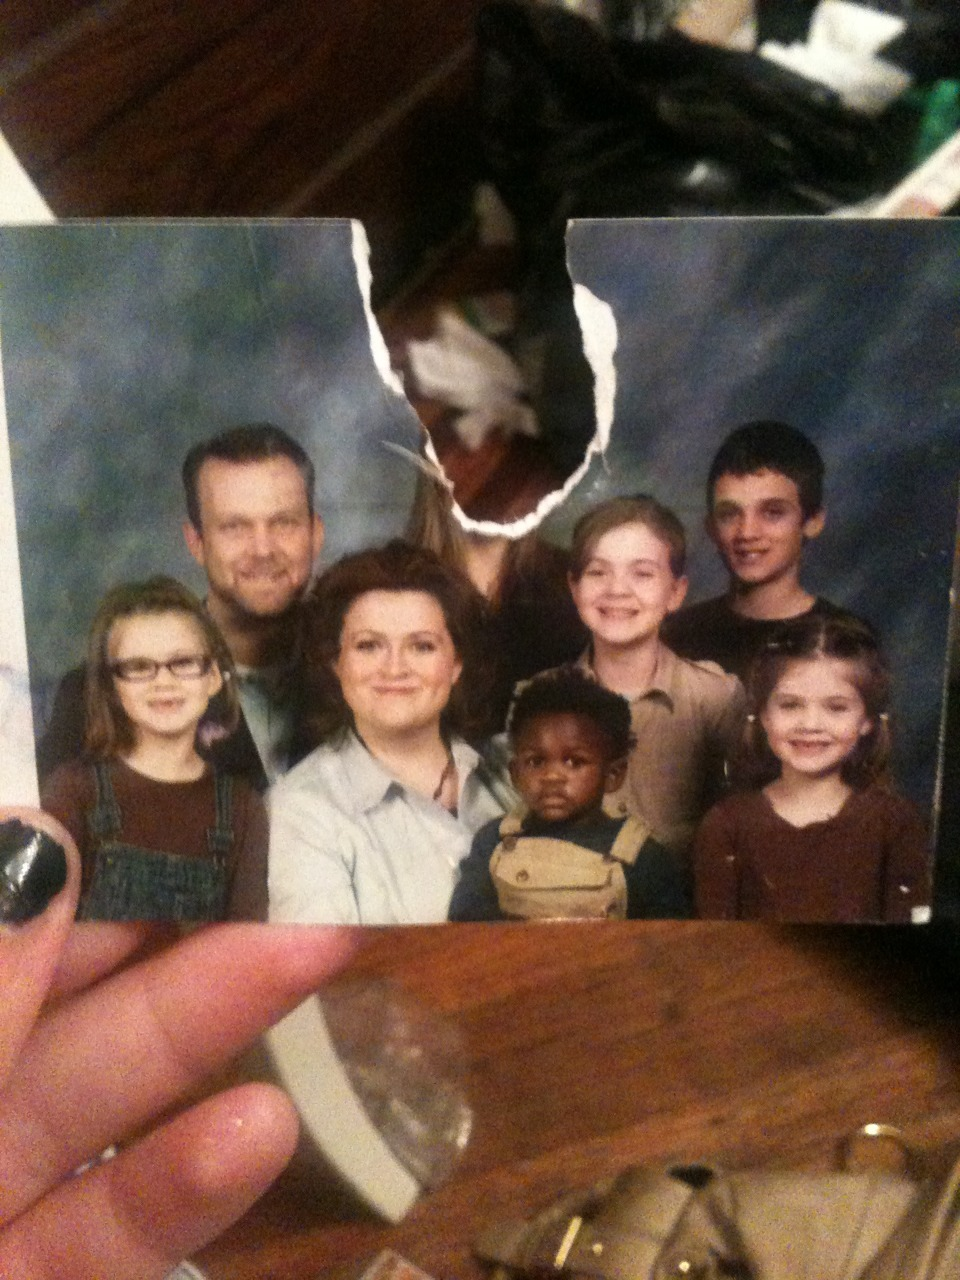 ollicat:  doomscritters:  lexuswillow:  This is an old family picture. My family does not support my being in the LGBTQIA community. They actually are opposed to it. They tell me every day that its disgusting and that it's sinful and I'll go to hell for liking women.  I moved out when I was seventeen, and in January I moved back in with them because I couldn't handle everything that was going on. Every day one of my five siblings tells me to go back to Minnesota. My little brother Charlie (the black baby in the picture) is now 8 and he constantly physically attacks me and tells me that I'm not his sister and to leave. My other siblings make it very obvious and clear that they don't want me here and my parents tell me constantly that they're gonna kick me out soon.  I've been saving every penny for a bus ticket to Oregon to stay with my best friend and today I found this picture in my sisters' room ON DISPLAY. Not hidden. On display. They cut my face out of the picture. And that… That was just the last straw.  I don't care if anyone reblogs this or whatever, I don't wanna get popular, I just want people to know that this is not what a family looks like. This is not something people should have to go through. This is no life.  Your family is full of shit and you are butterfly that got trapped in shit and I am happy that you are about to escape uwu  THIS IS BEYOND DEVASTATING I'M GOING TO CRY.